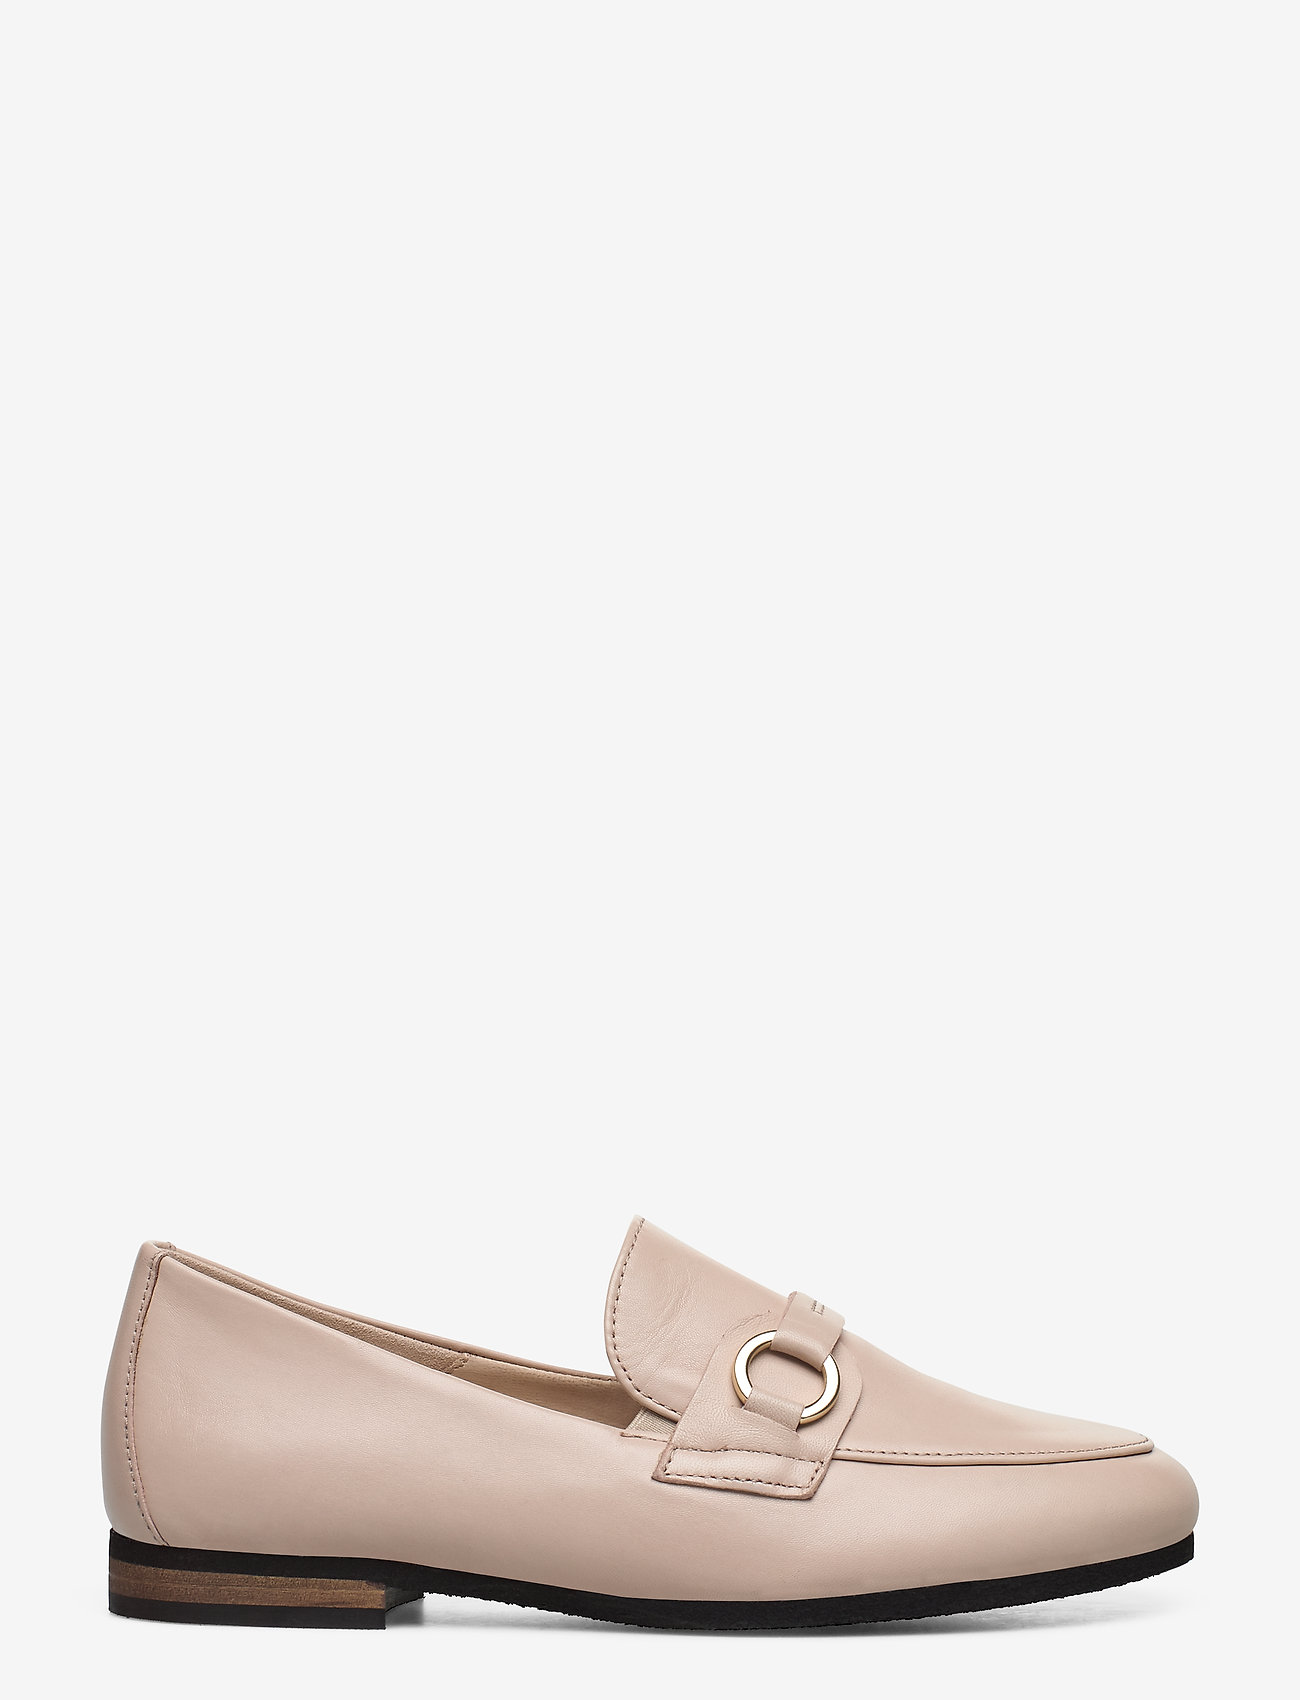 Gabor - slip on - loafers - other colour - 1